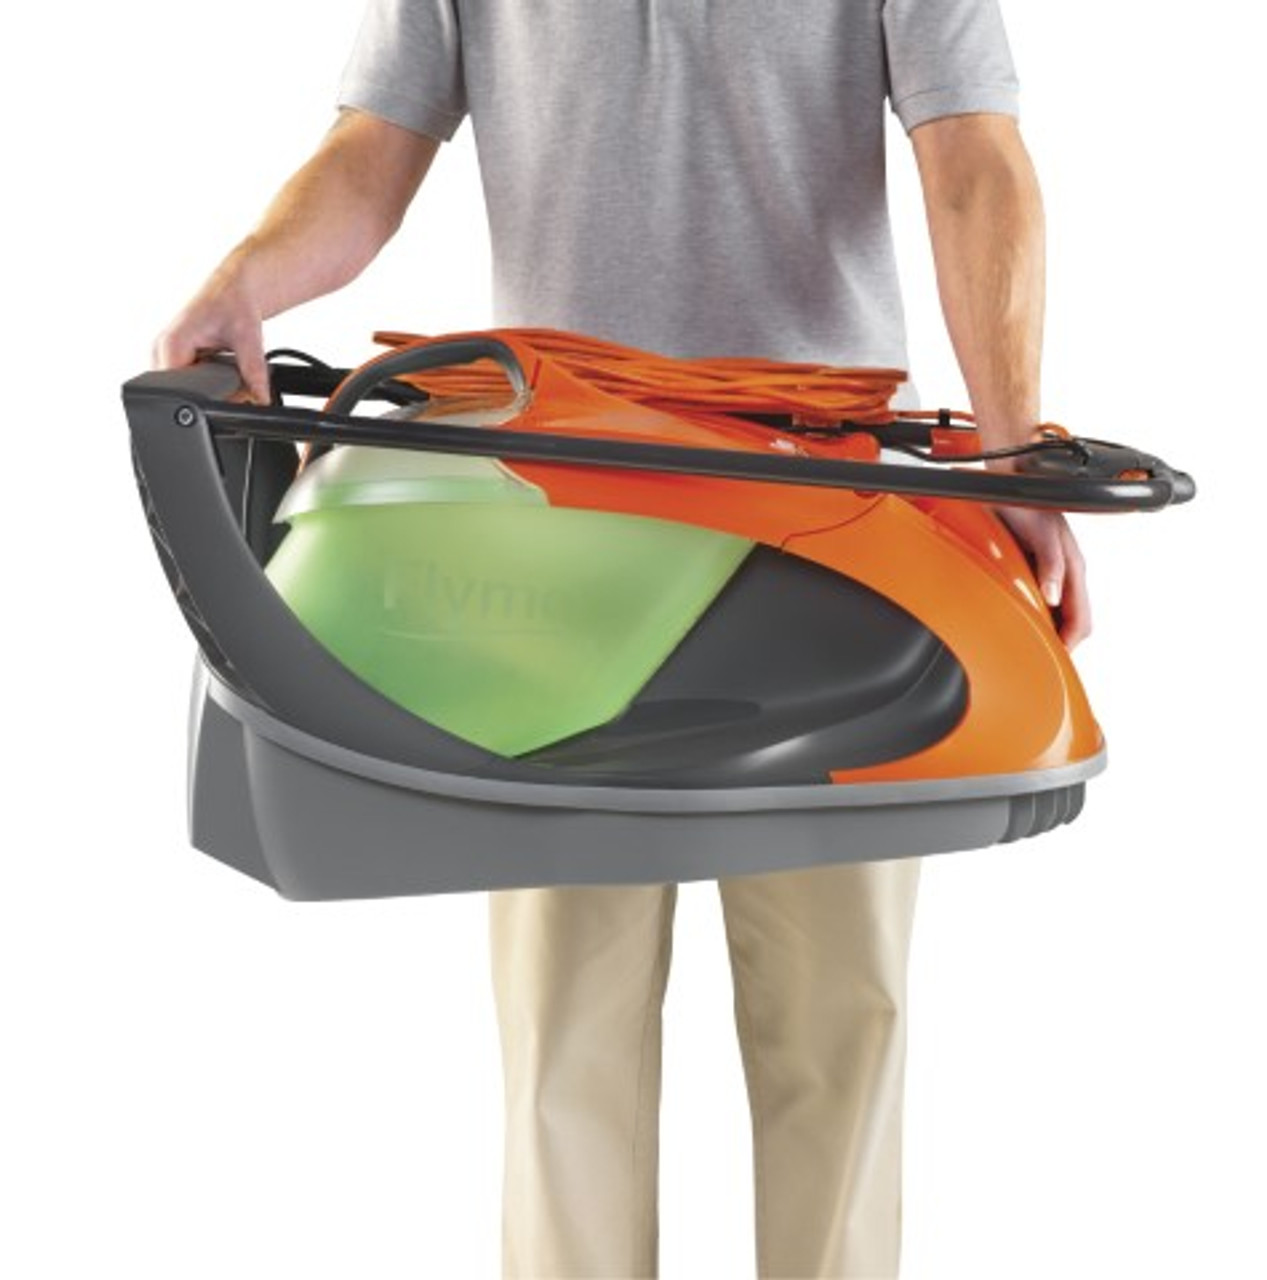 Flymo Glider 350 Hover Lawnmower